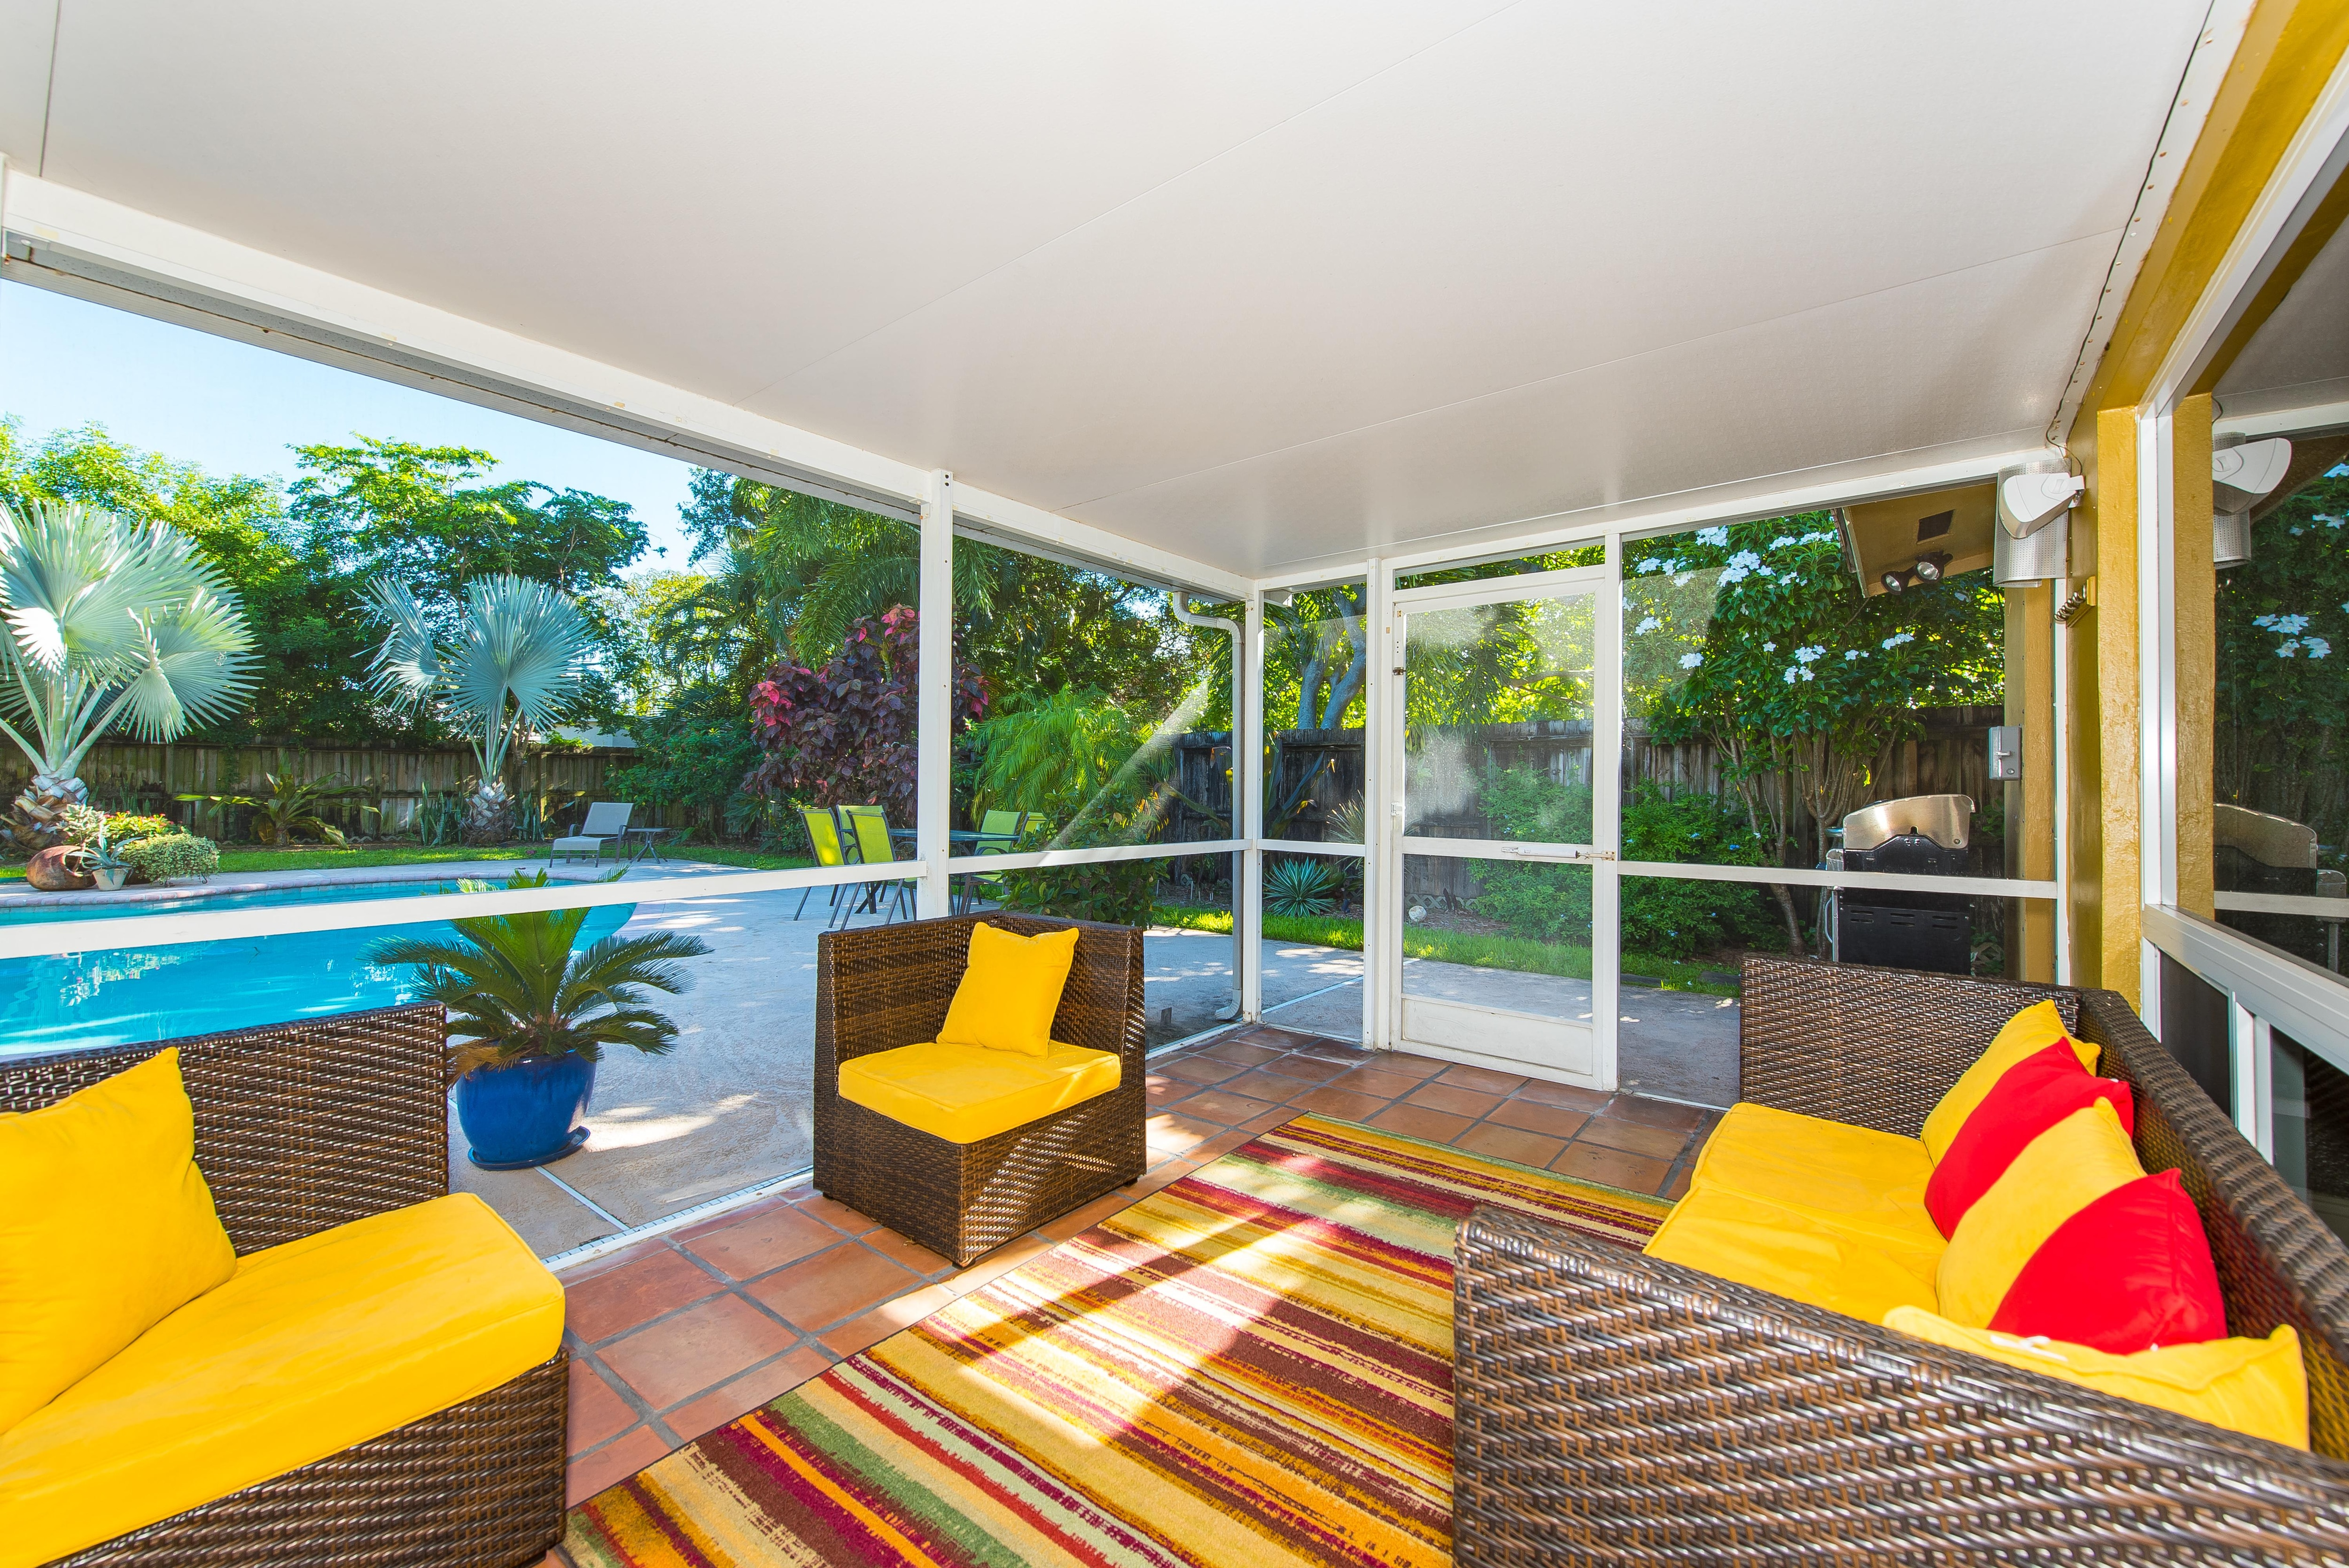 Chat with friends or family on the screened lanai